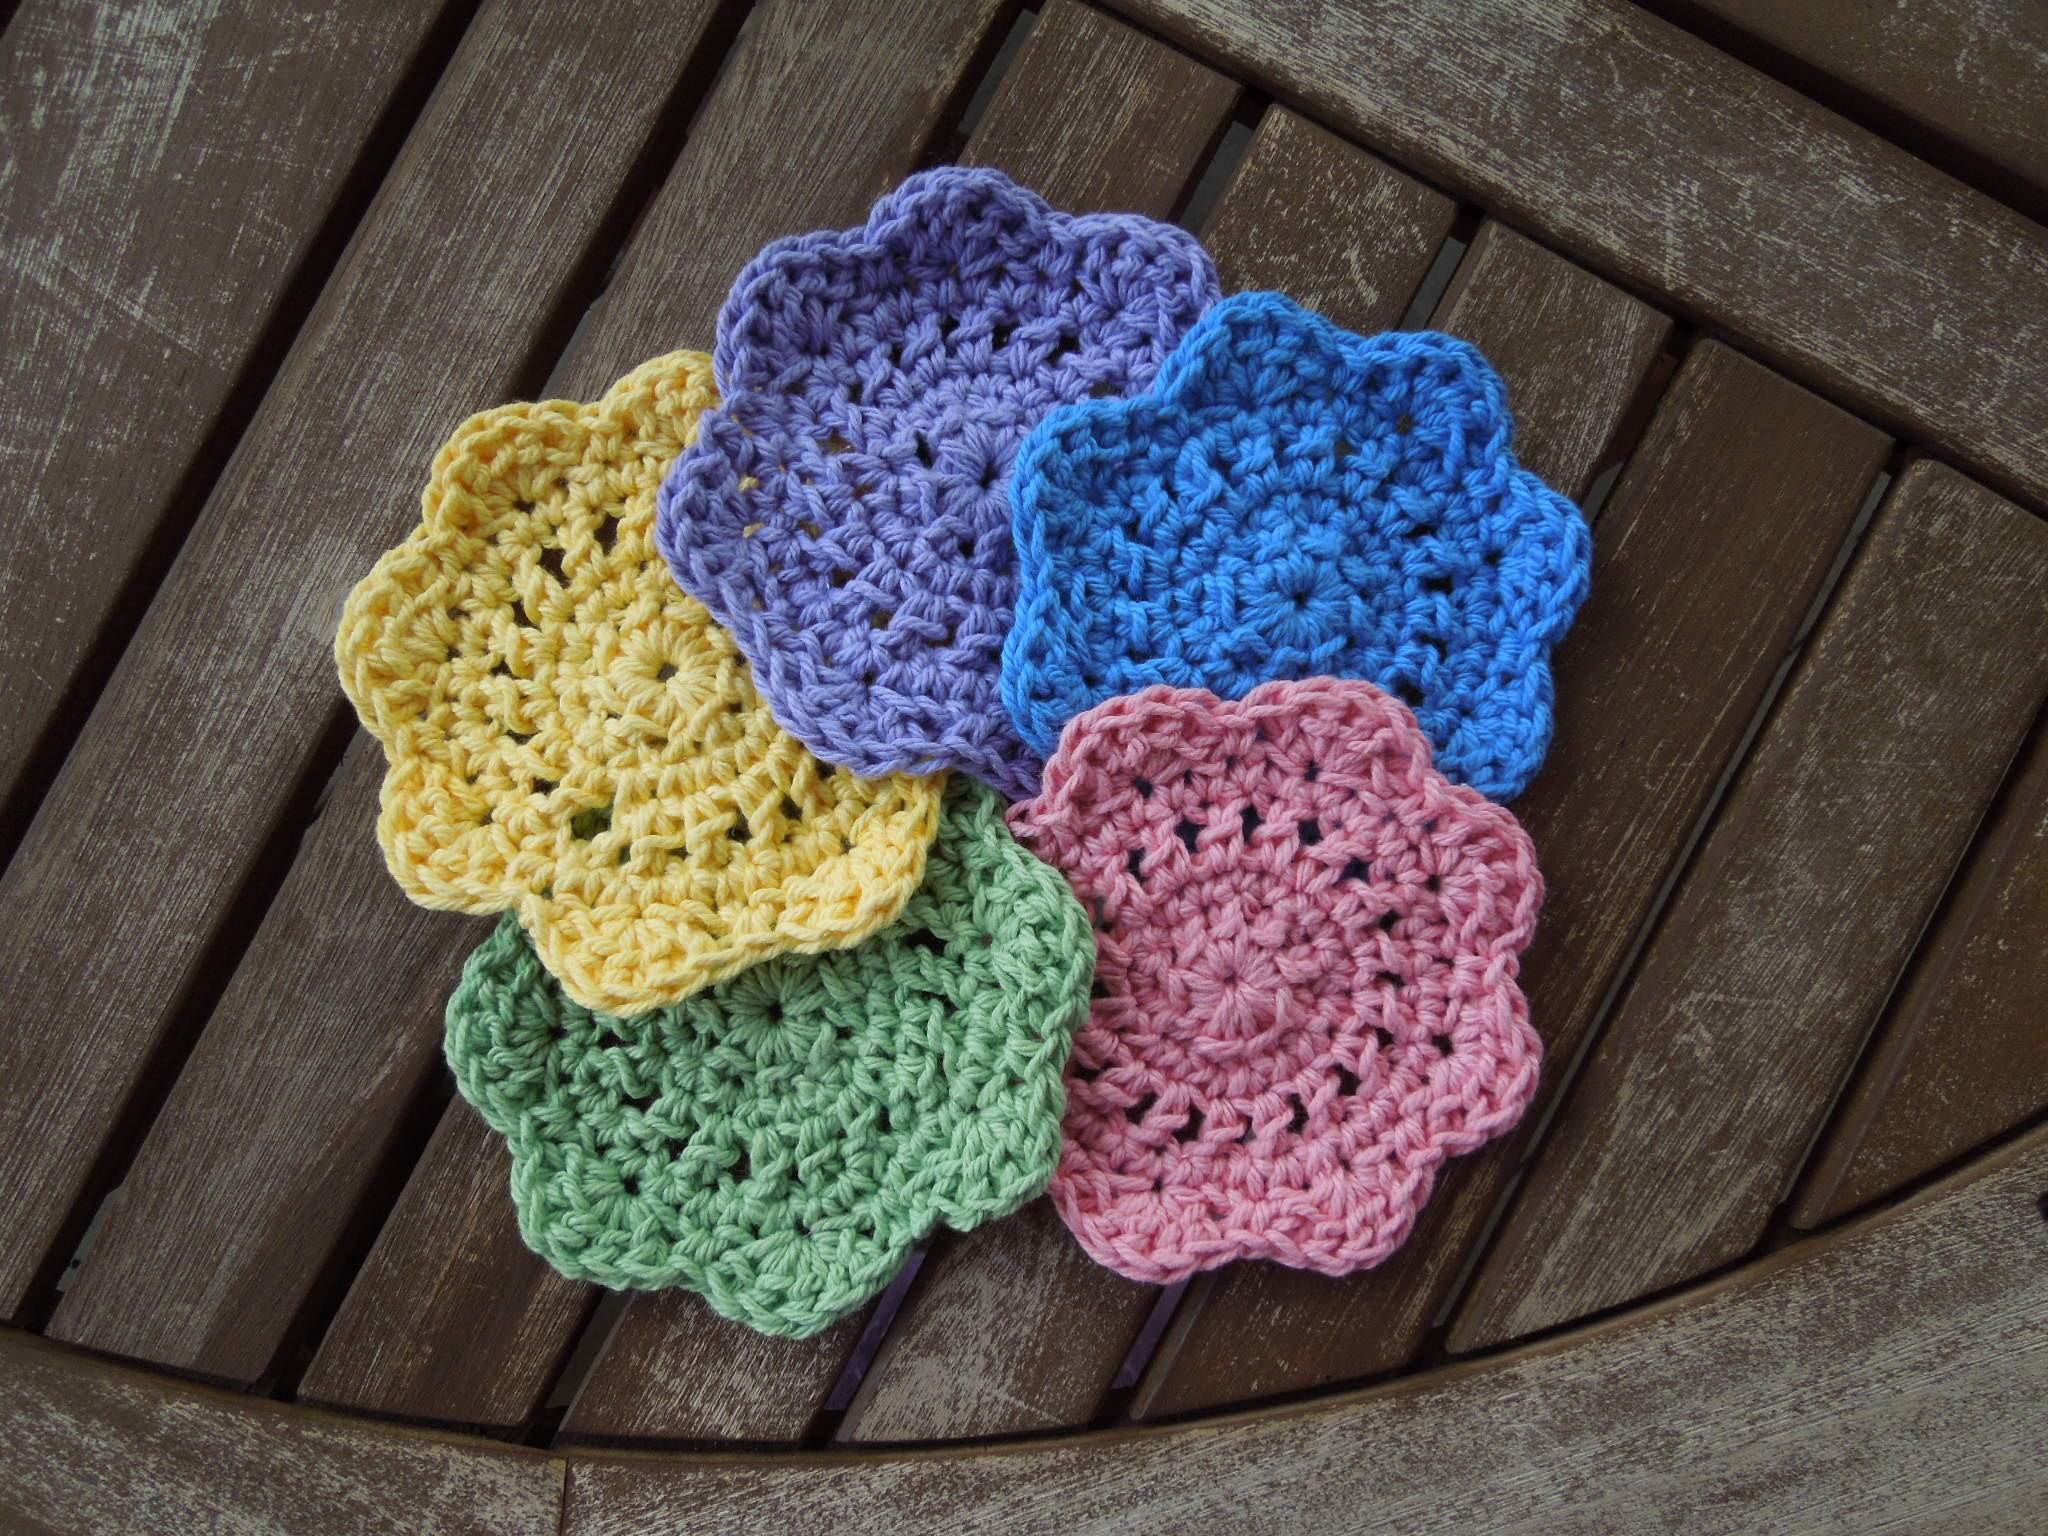 Free Easy Crochet Patterns Luxury Quick & Easy Coasters Free Crochet Pattern Of Free Easy Crochet Patterns Beautiful Mini Octopus Crochet Pattern